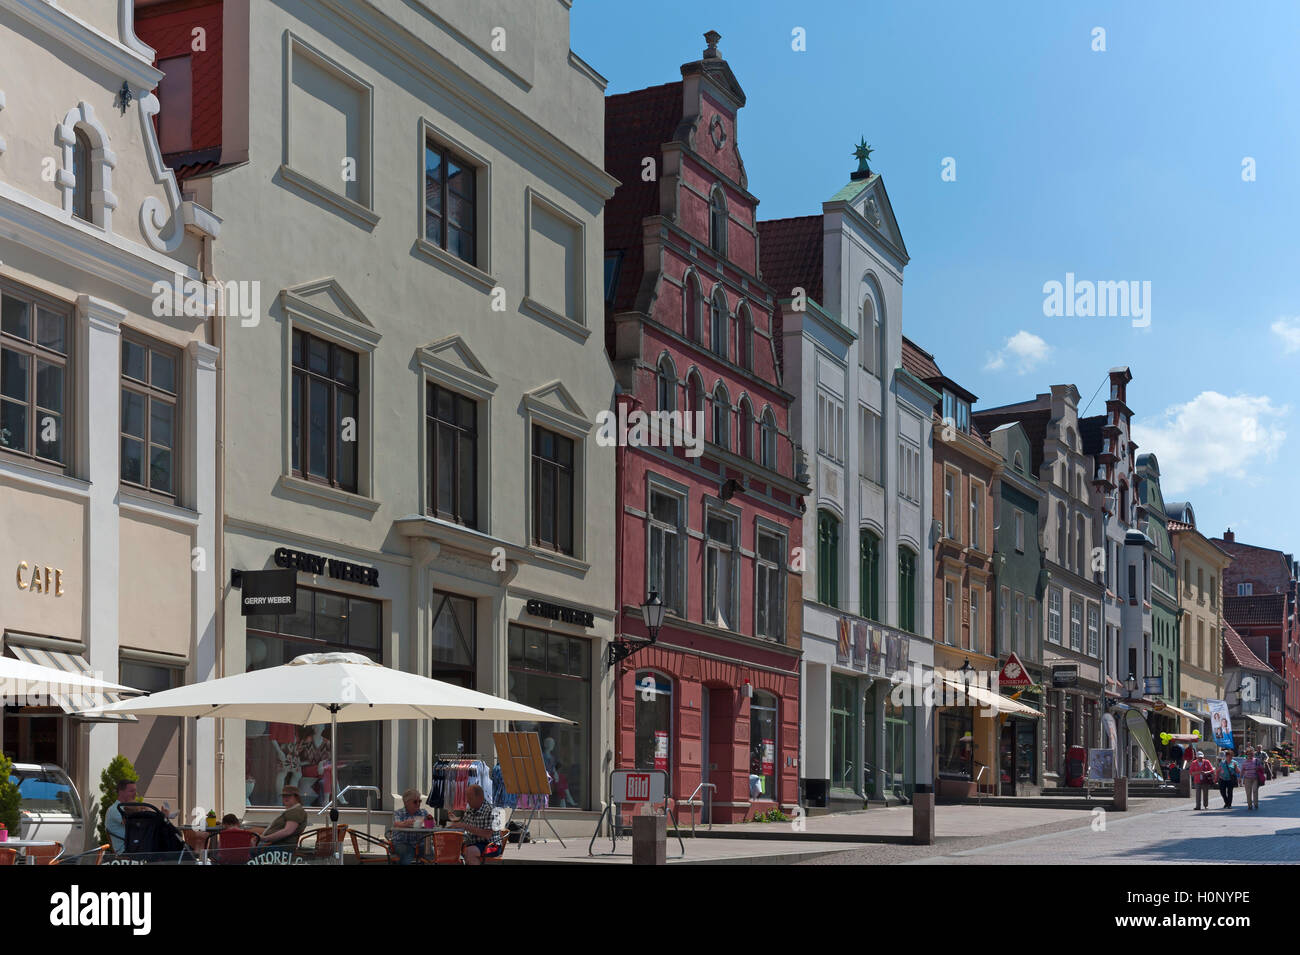 Pedestrian area with colorful facades, downtown, Wismar, Mecklenburg-Western Pomerania, Germany - Stock Image